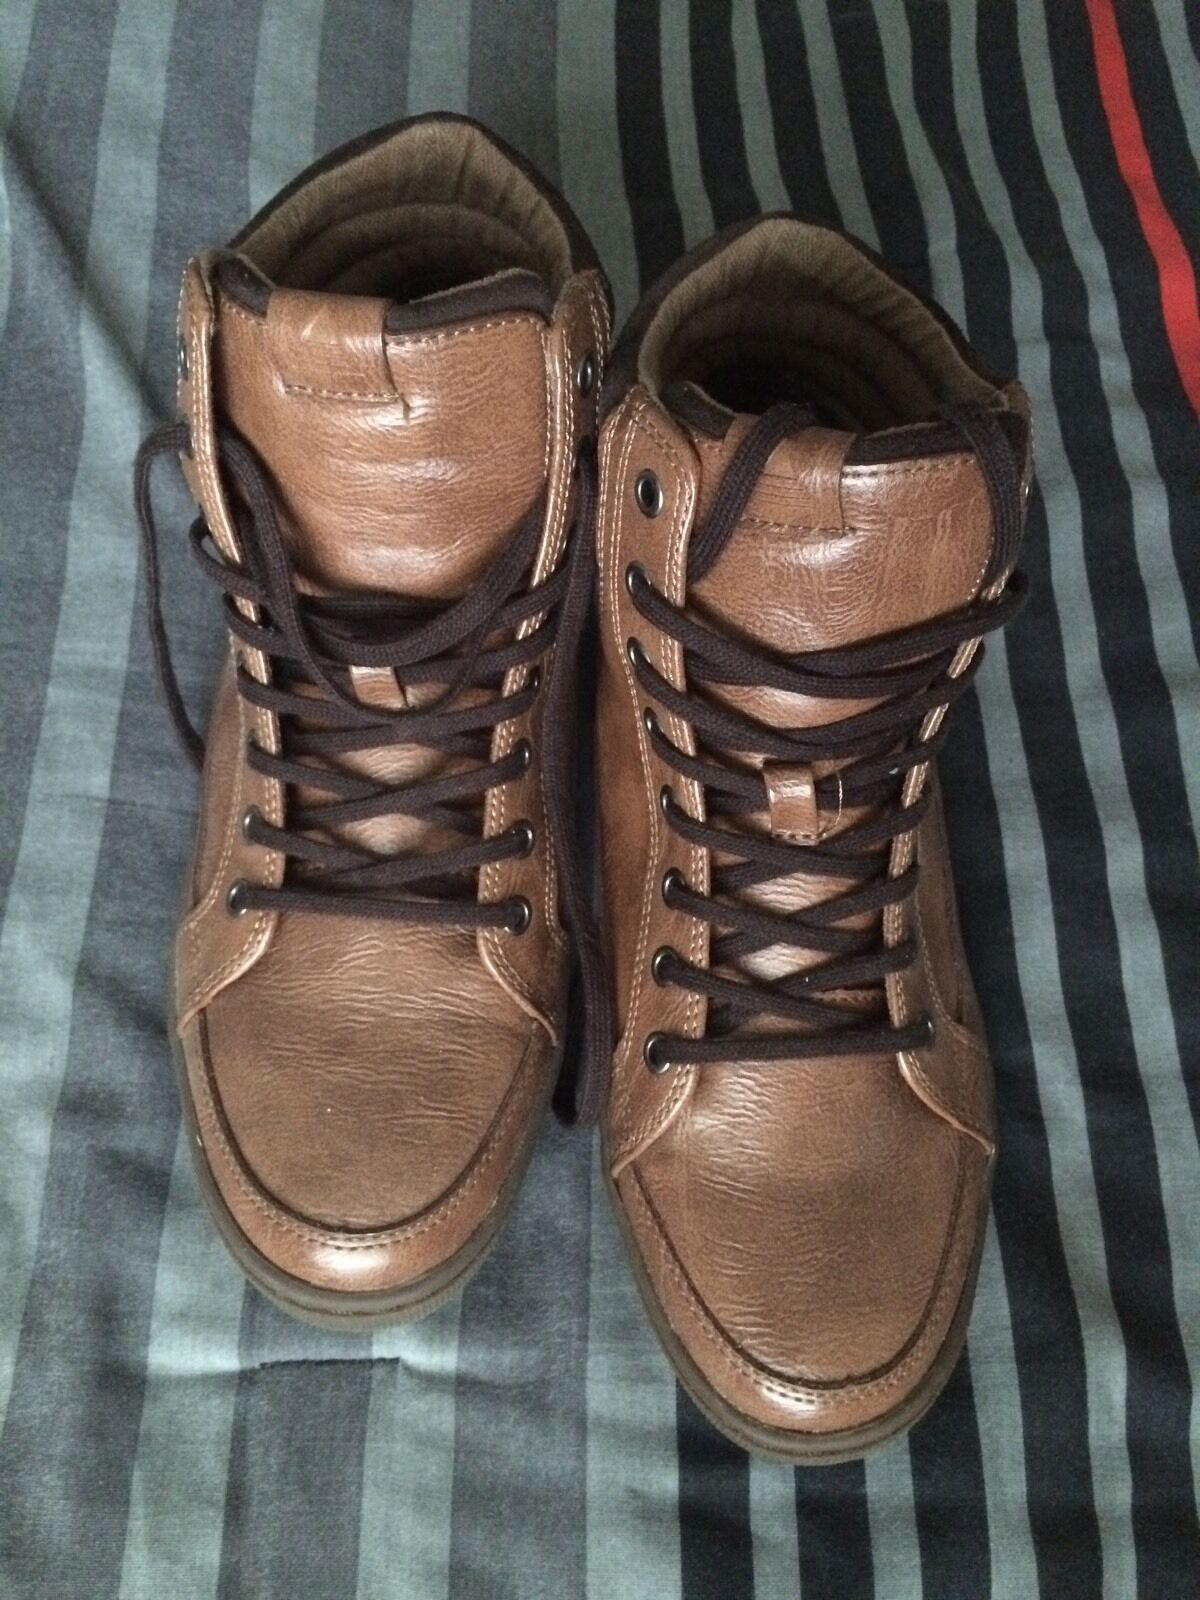 Aldo Boots Men's Size US 9.5